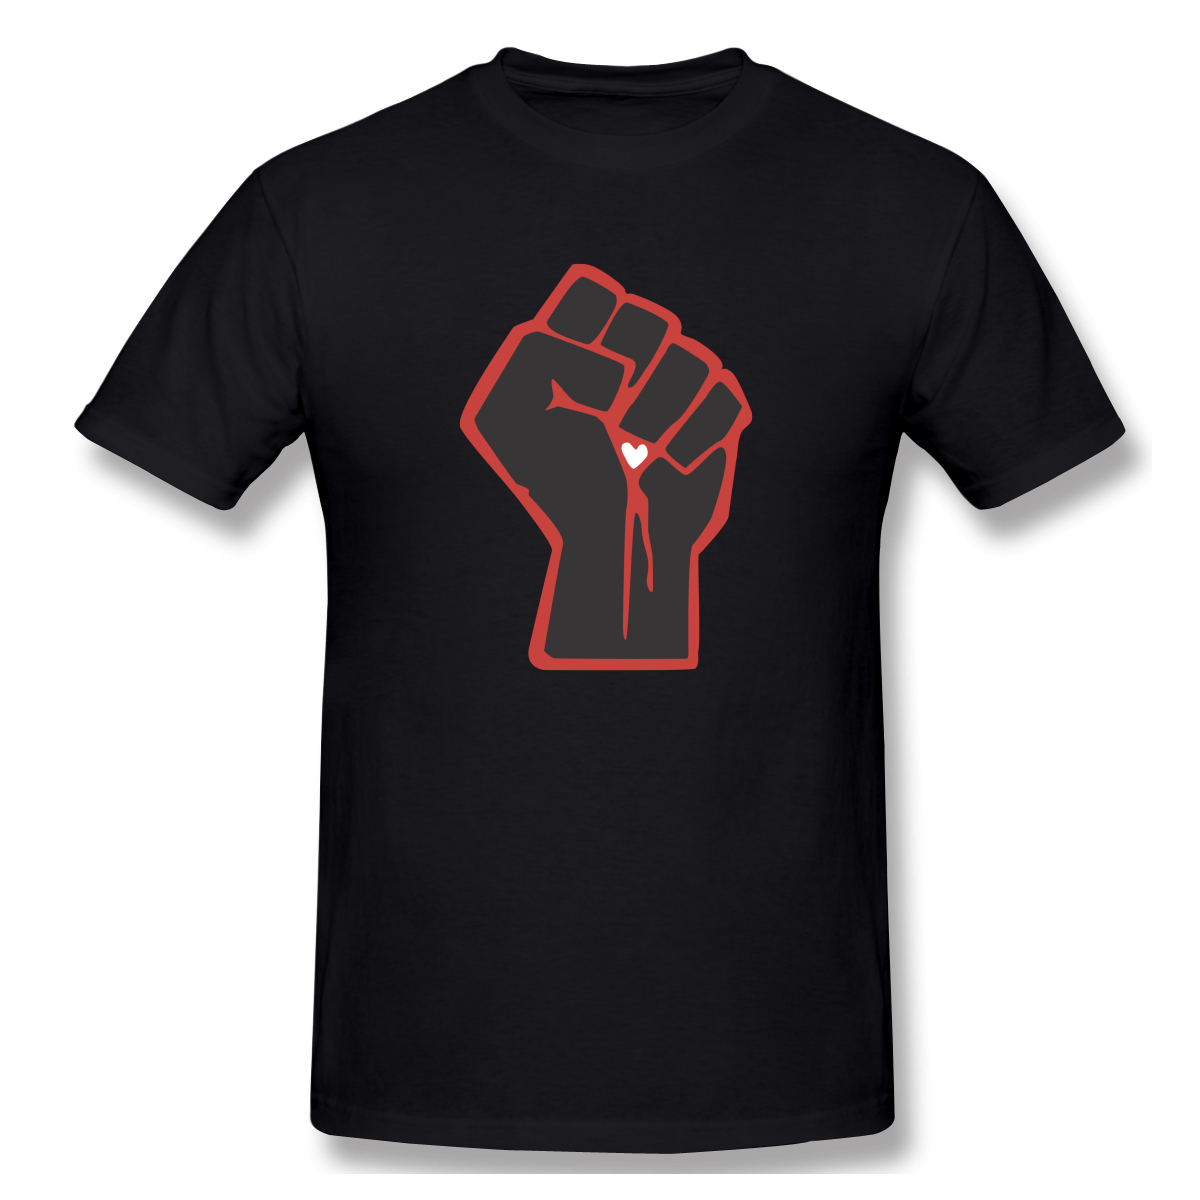 Casual Fashion T-Shirt Men's Cotton Short Sleeve Fist Love Heart Vector Black Red Fight Power Quality Male Tshirt Mens